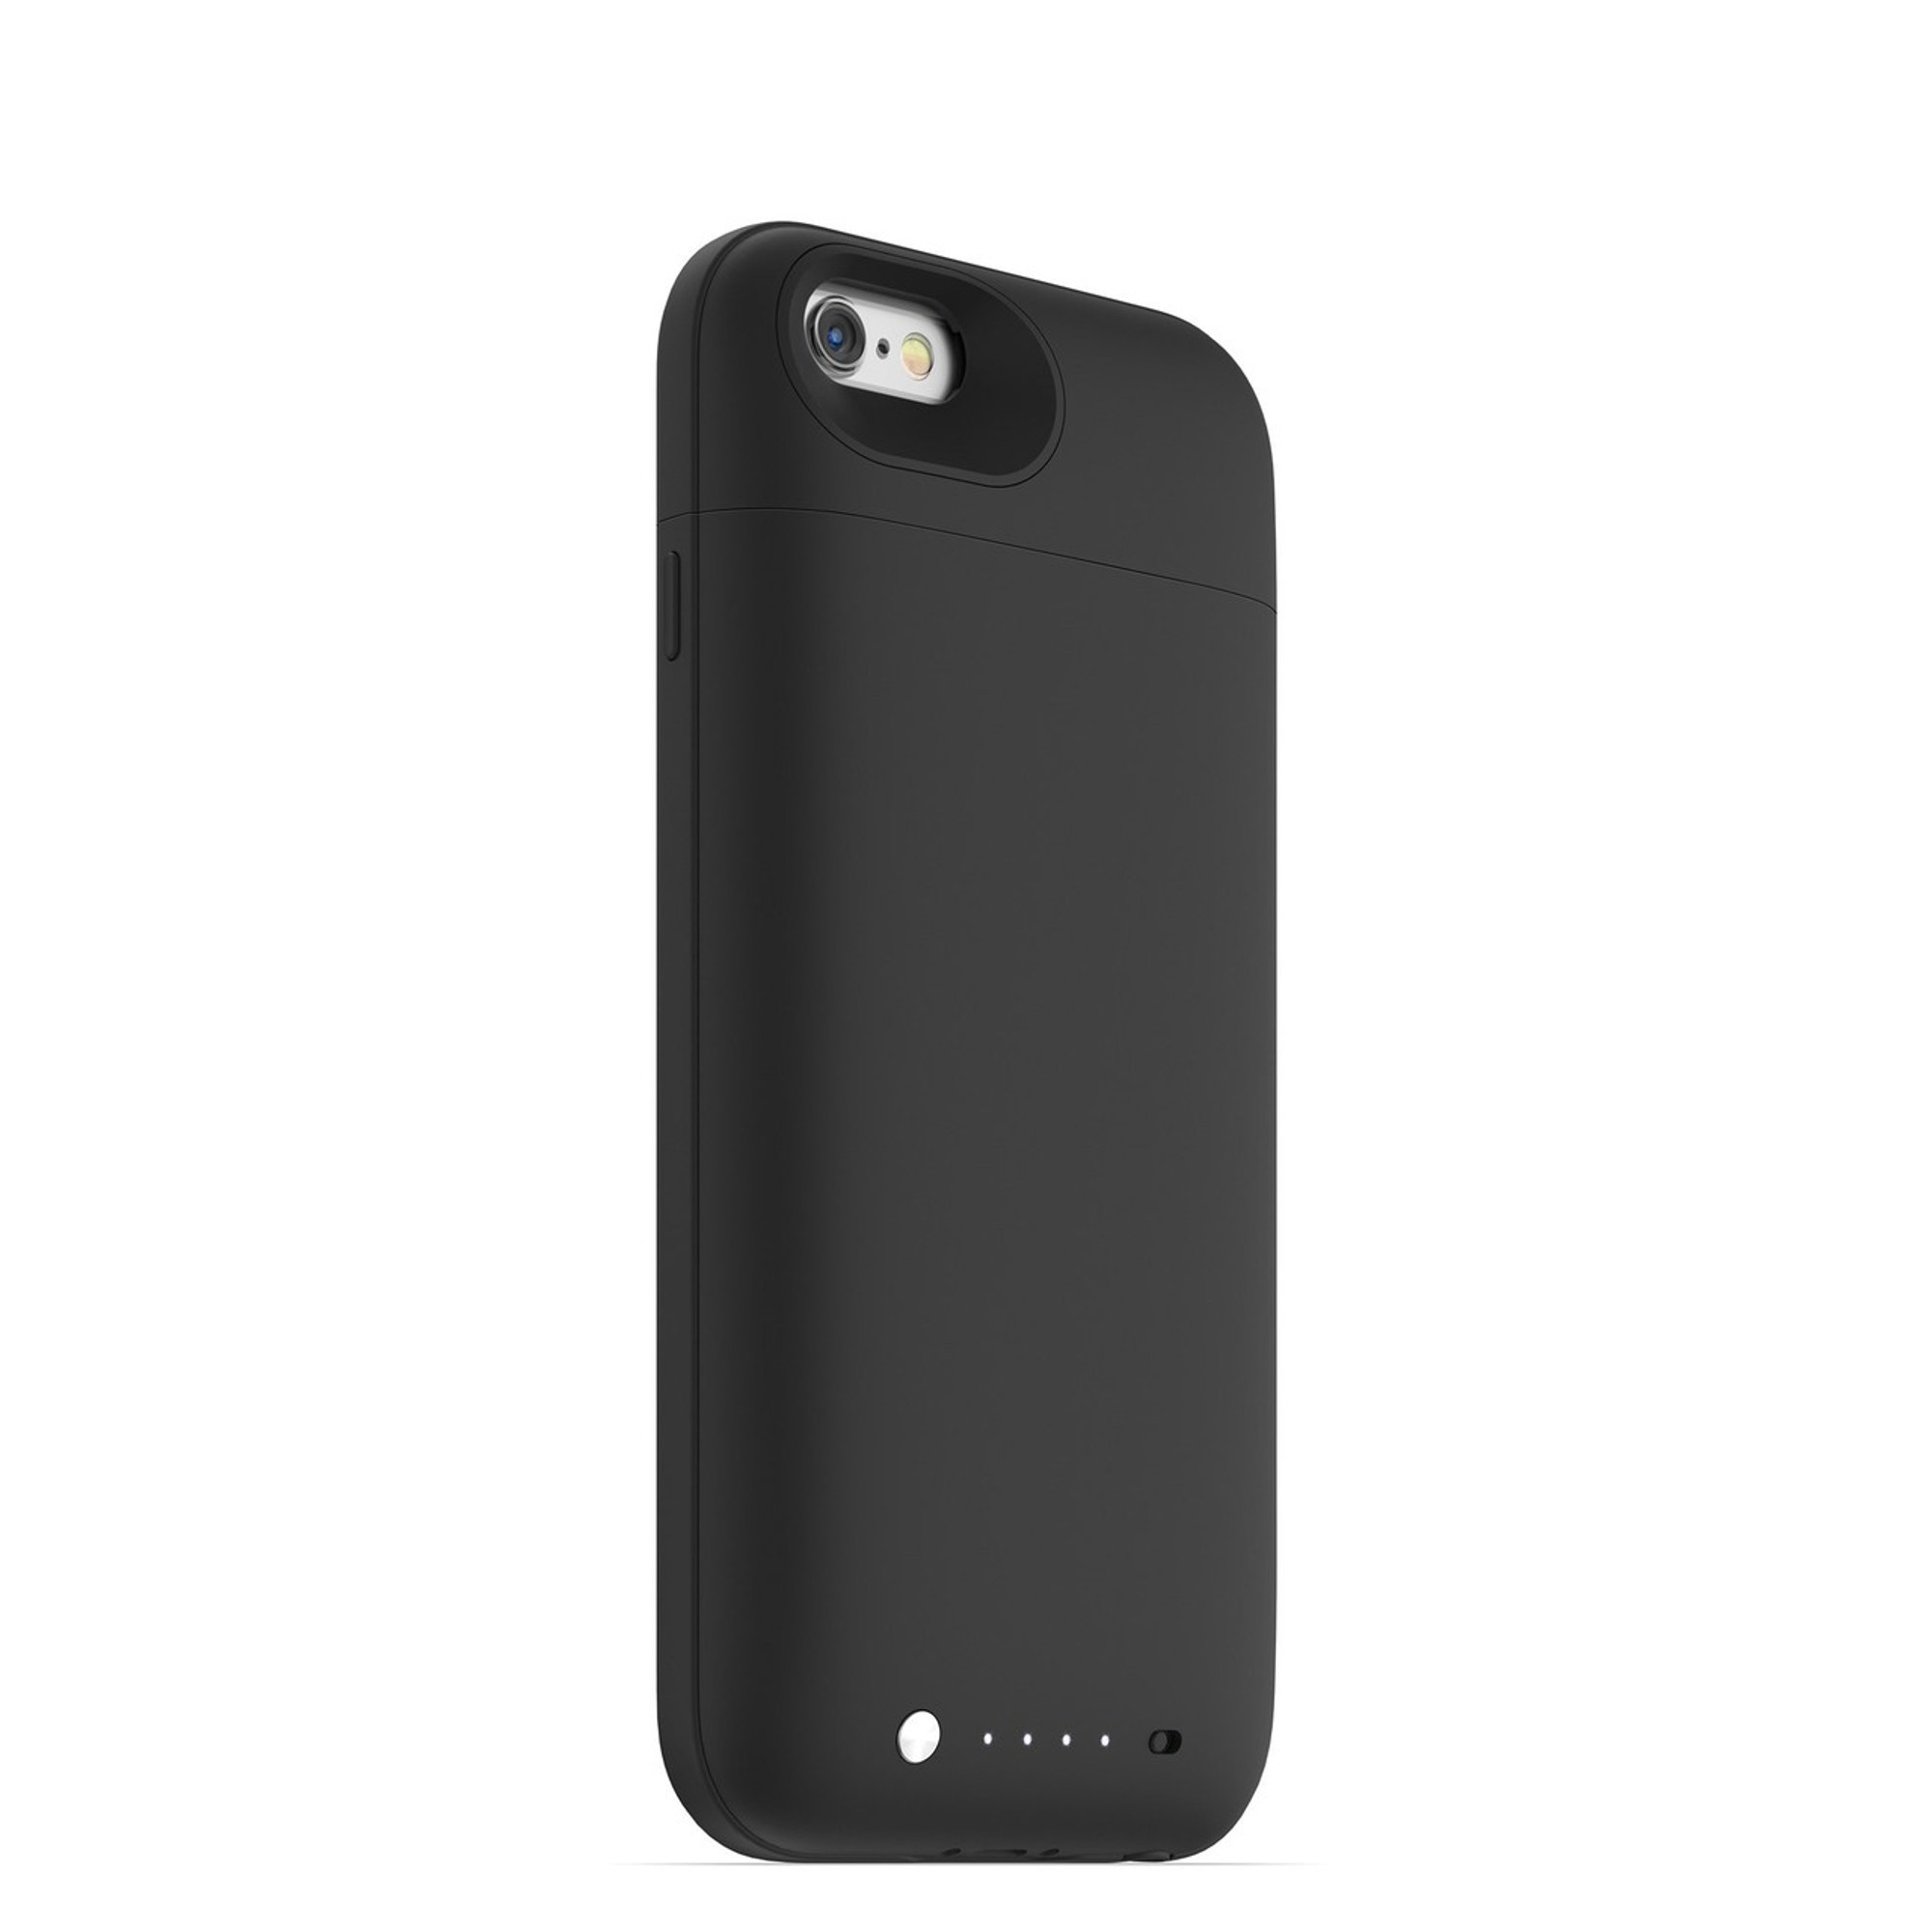 sale retailer fa05d aa25c mophie space pack for iPhone 6S Plus / 6 Plus - 32 GB Black